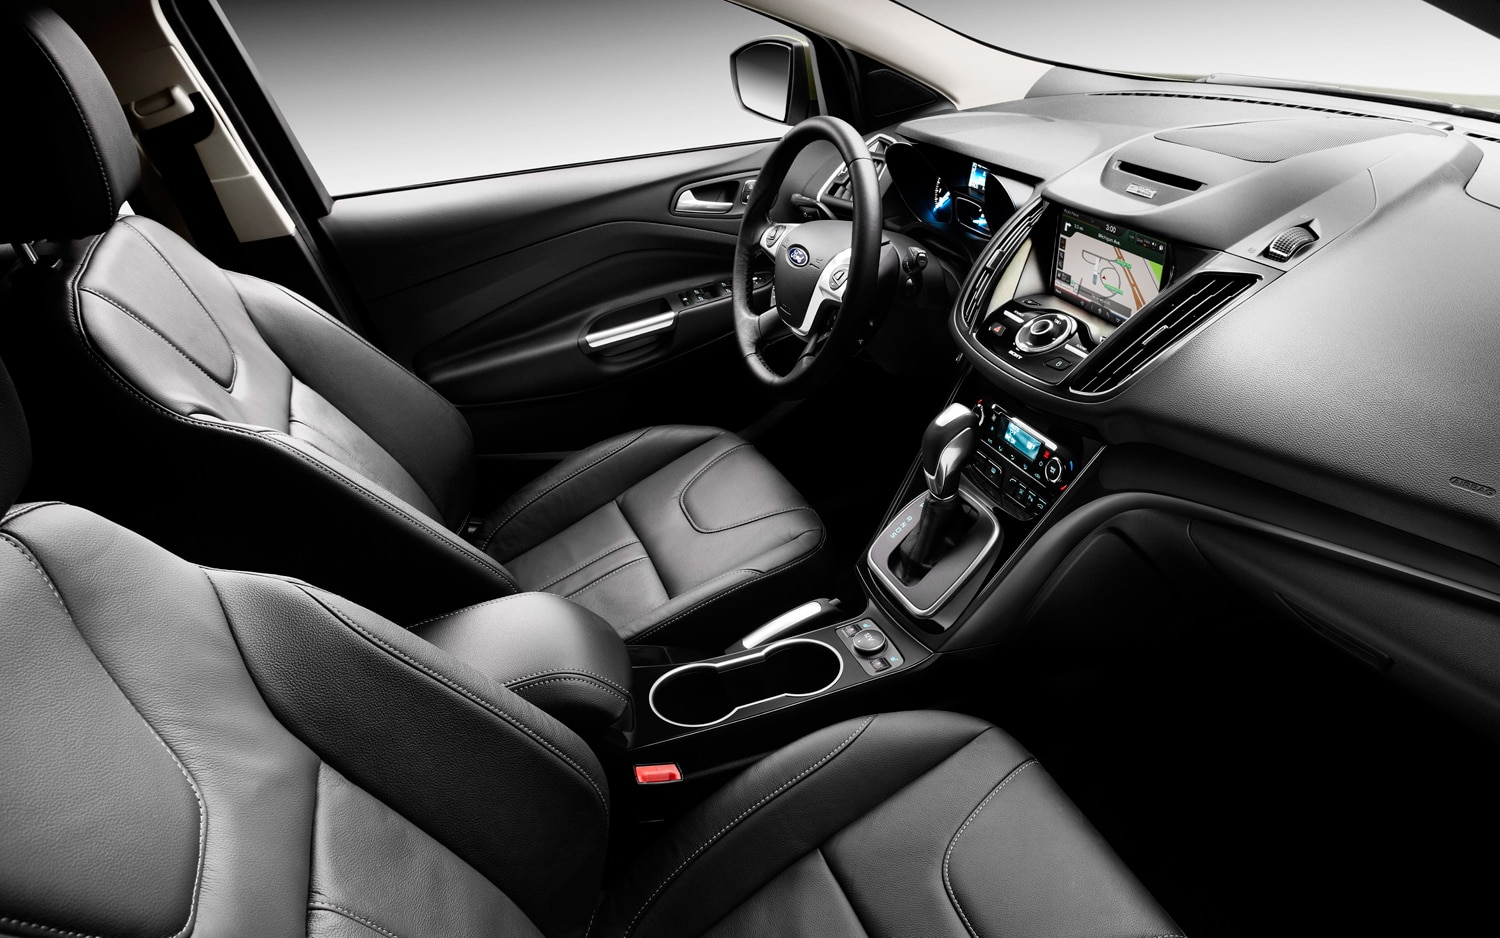 2013 Ford Escape Front Interior